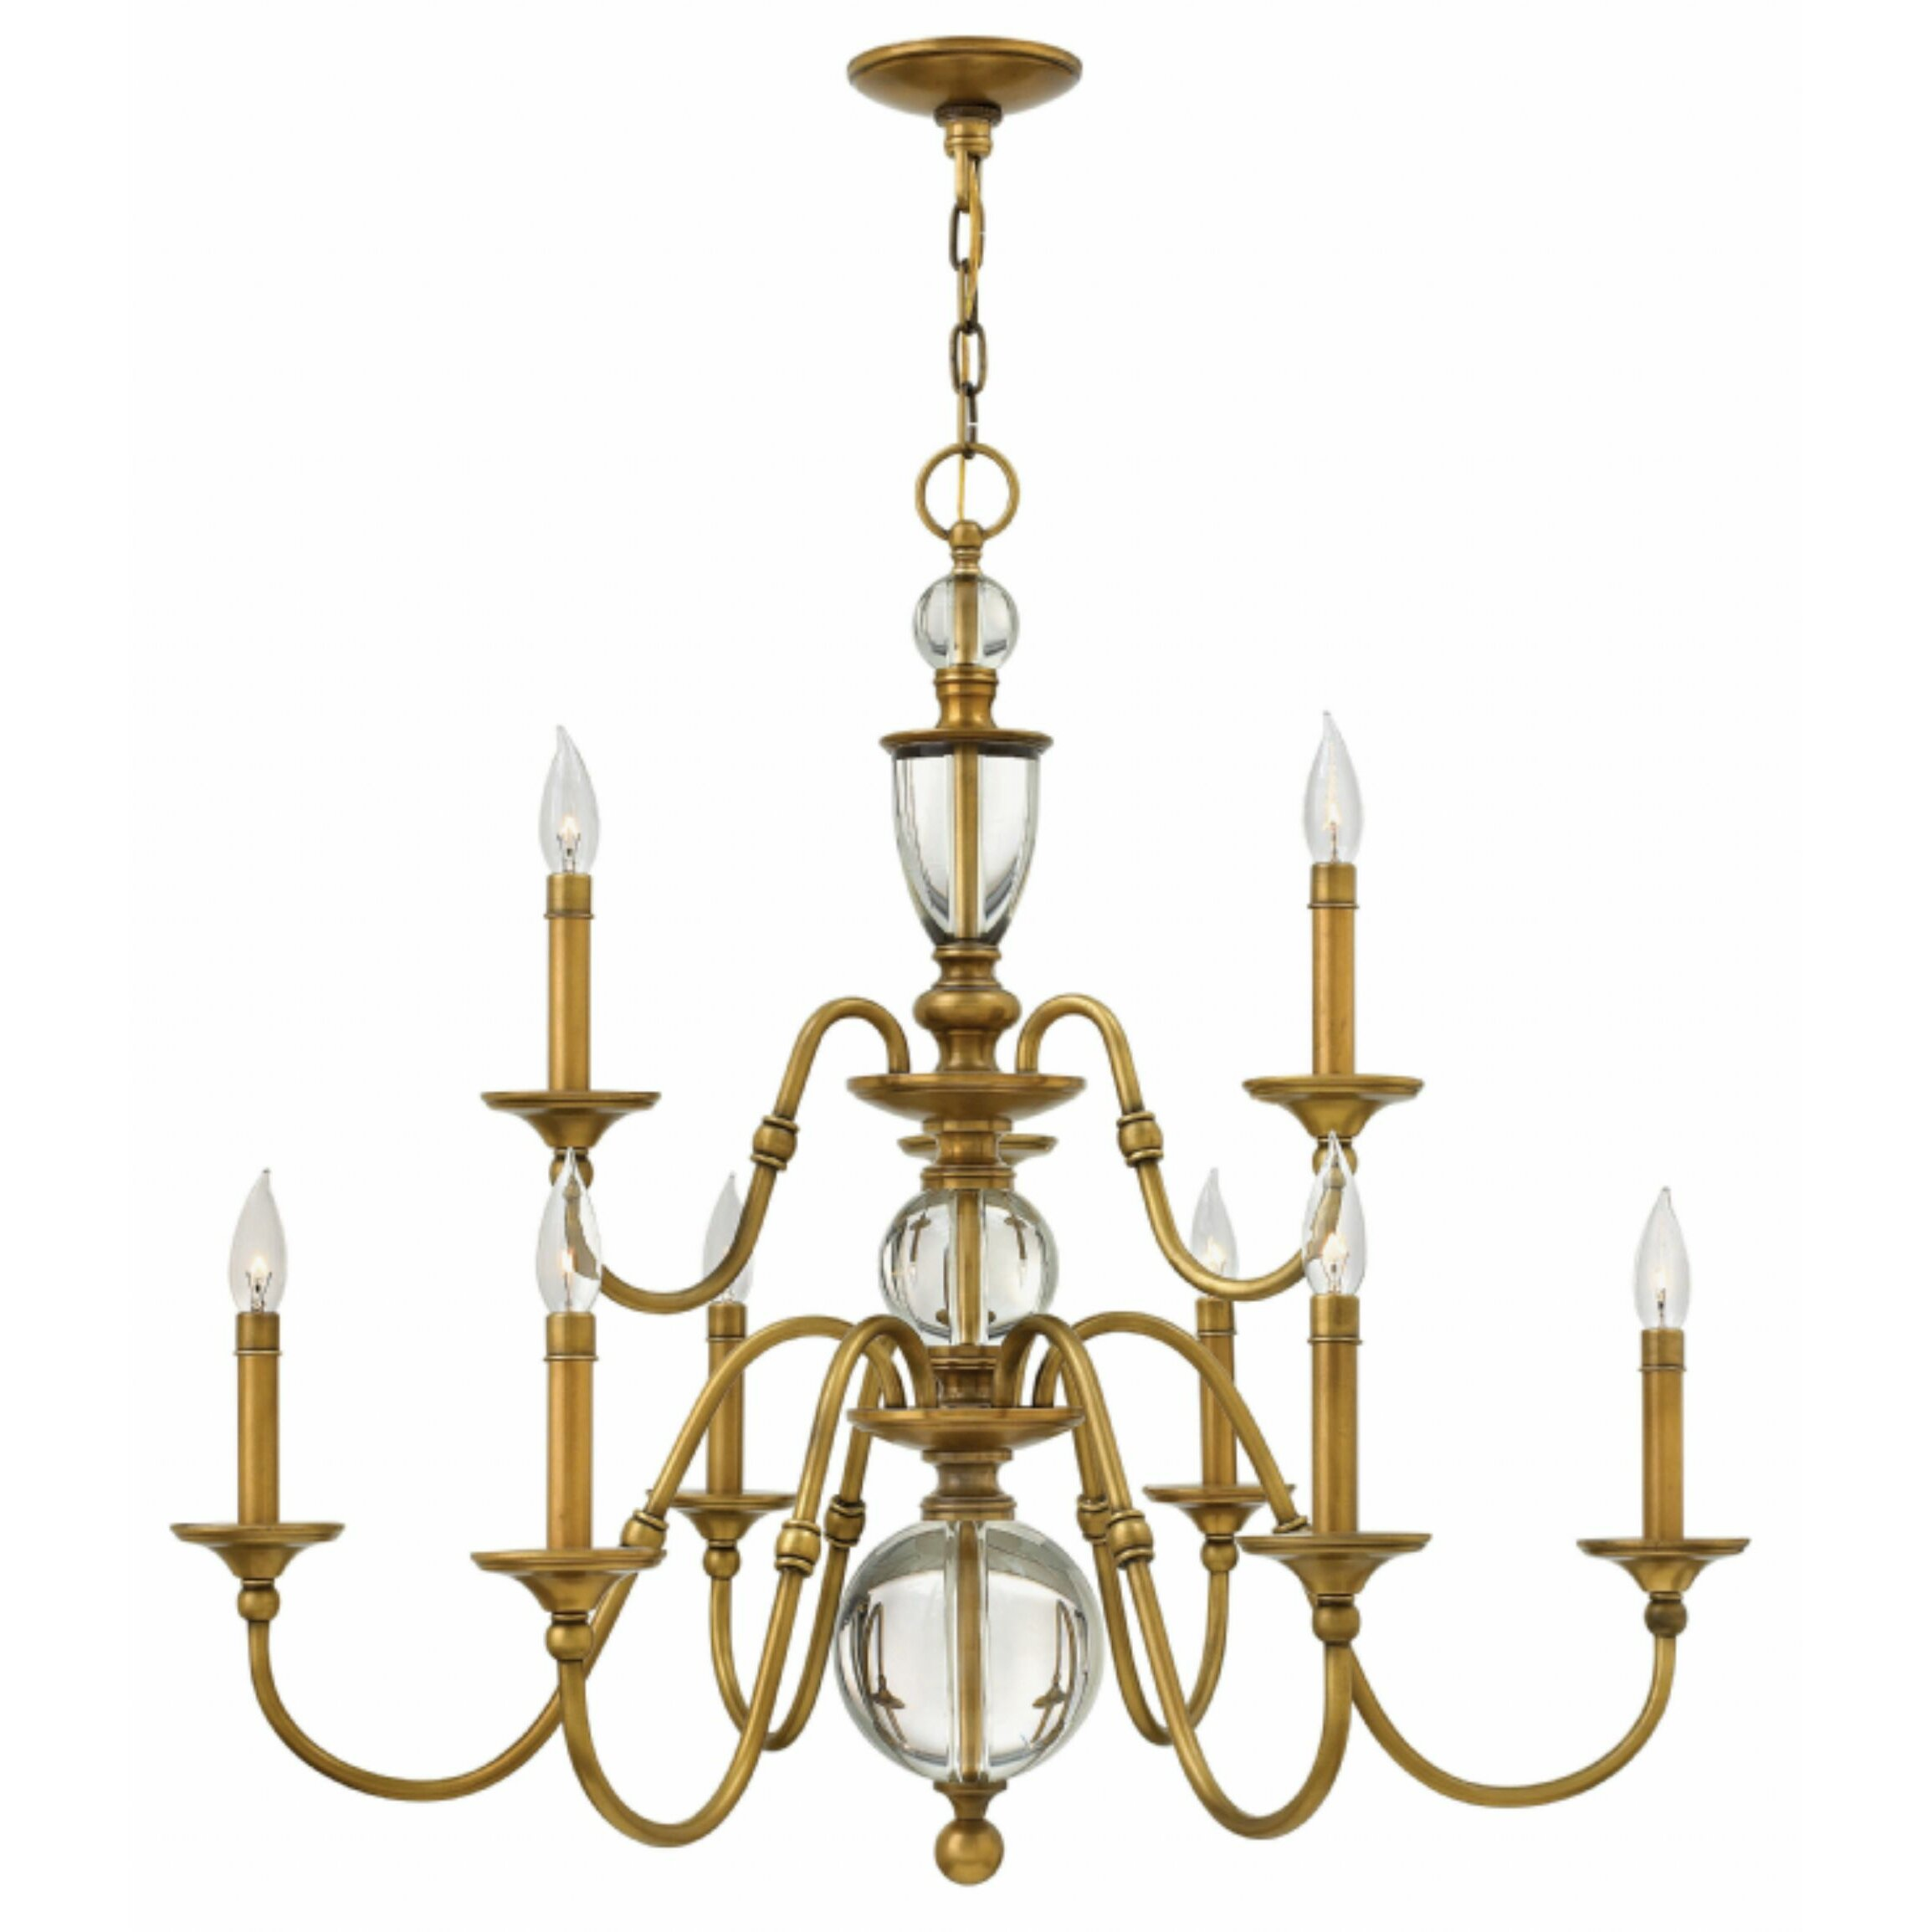 Eleanor 9 Light Candle Chandelier